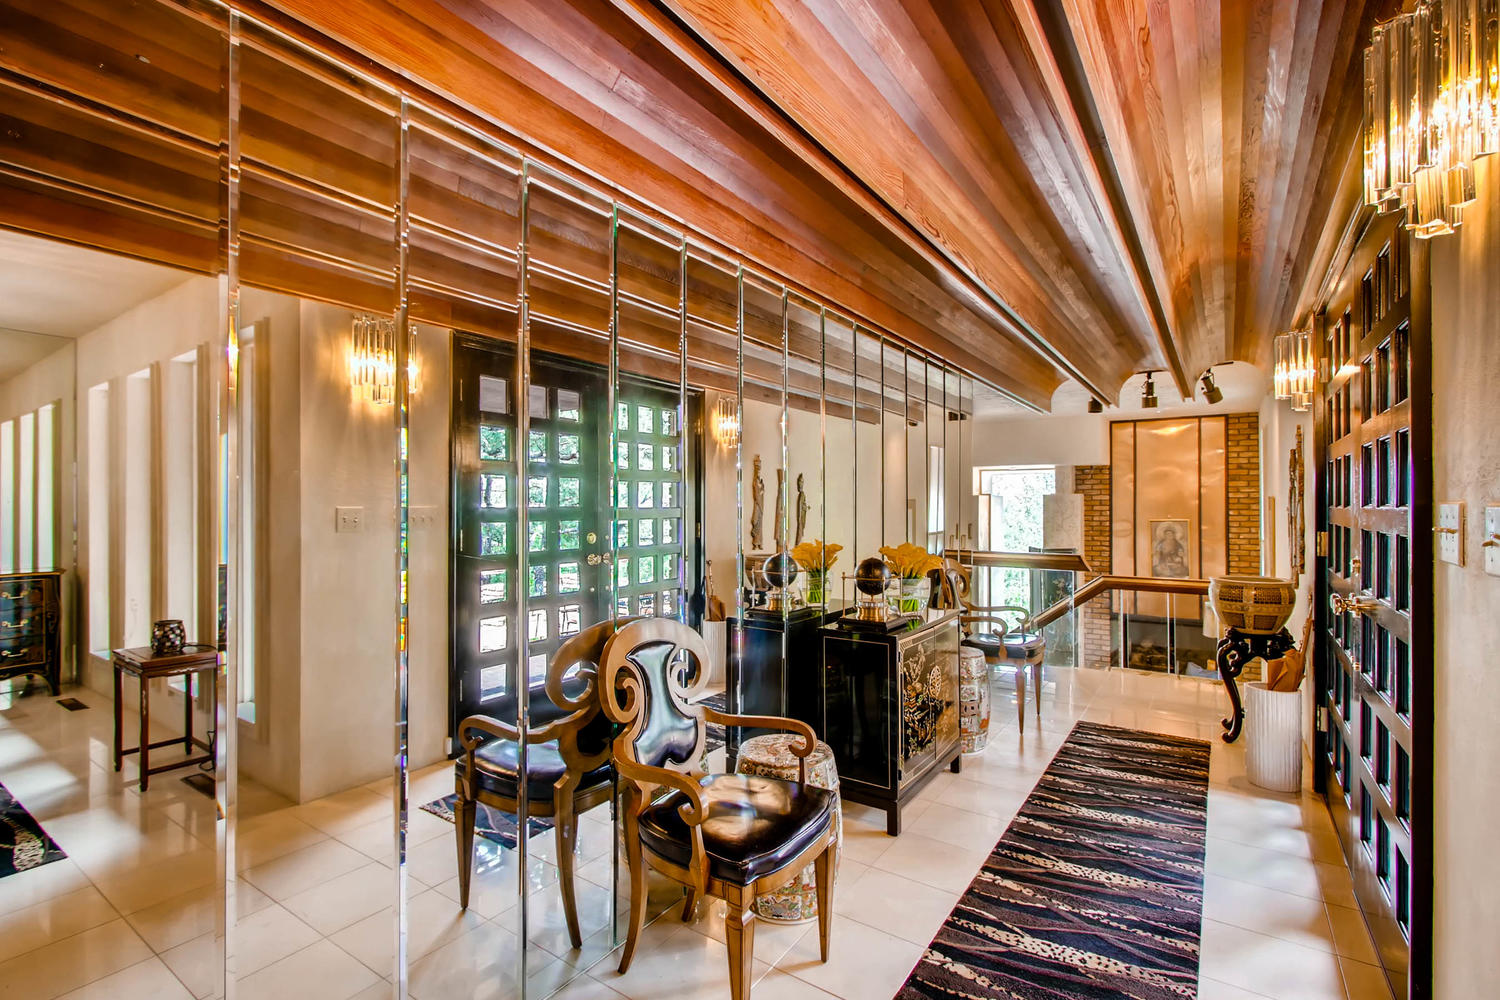 Front Entry Way with Beautiful Woodwork in Ceilings